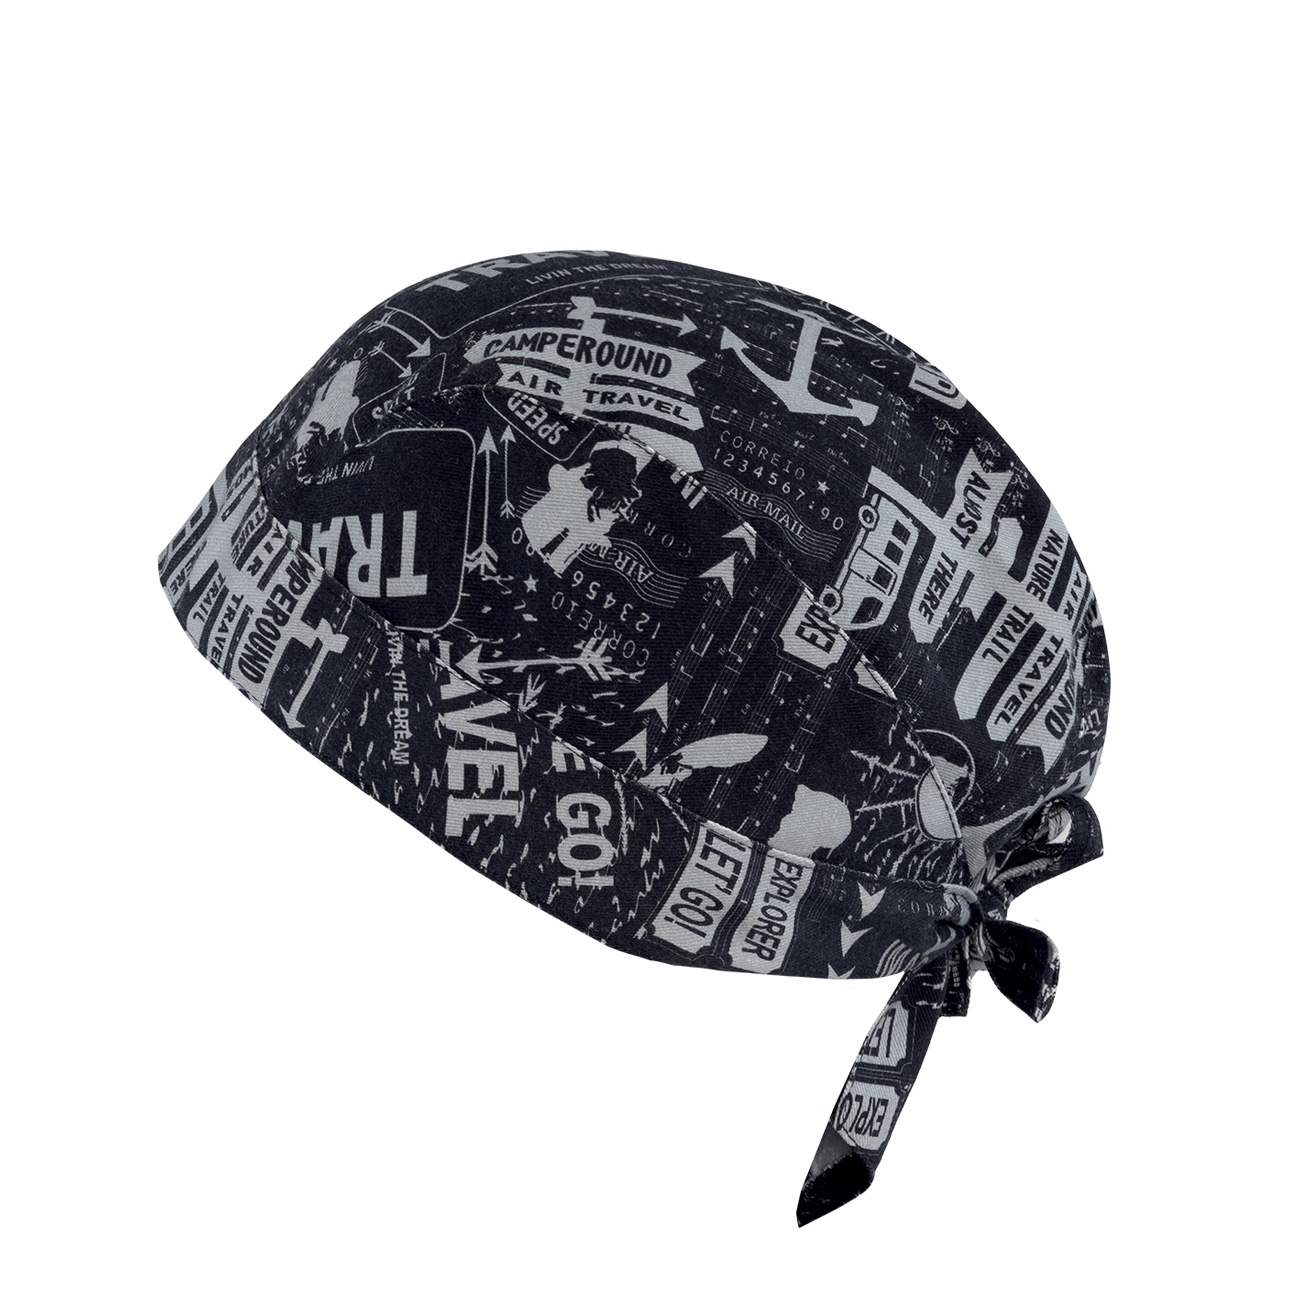 Image of Bandana cuoco Giblor's Travel